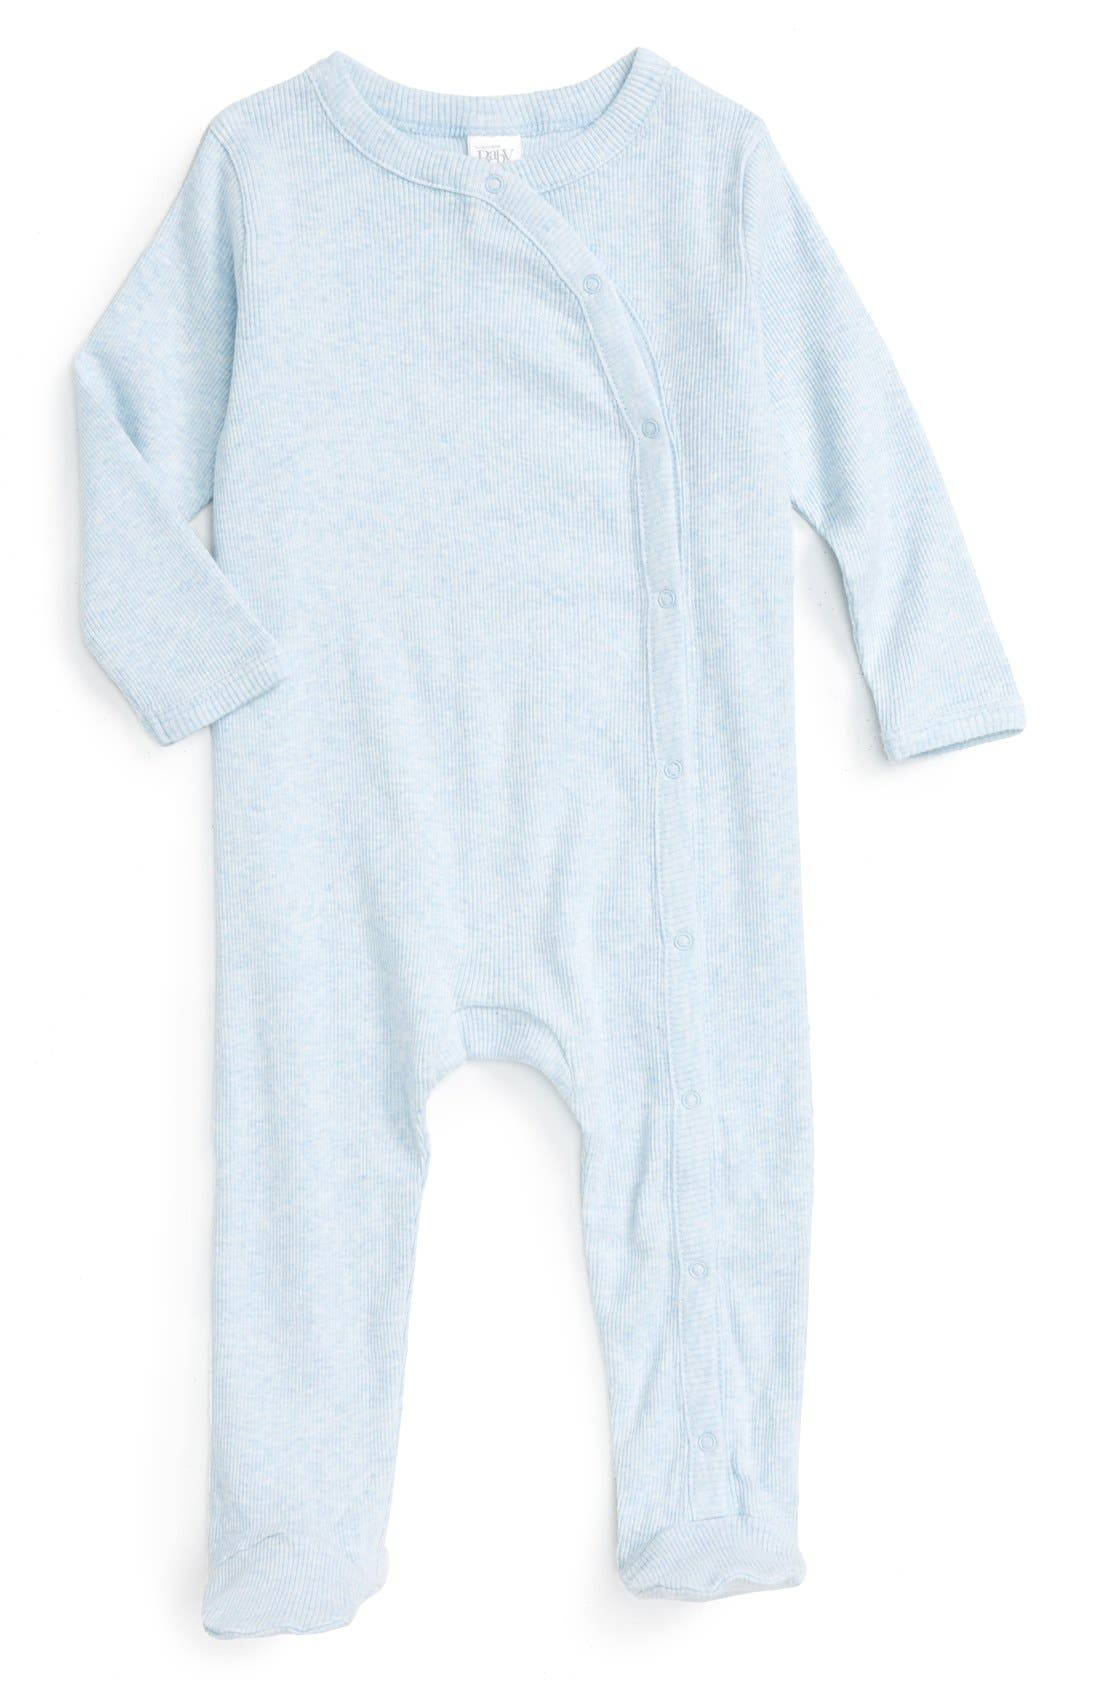 NORDSTROM BABY Rib Knit Footie, Main, color, BLUE PRECIOUS HEATHER